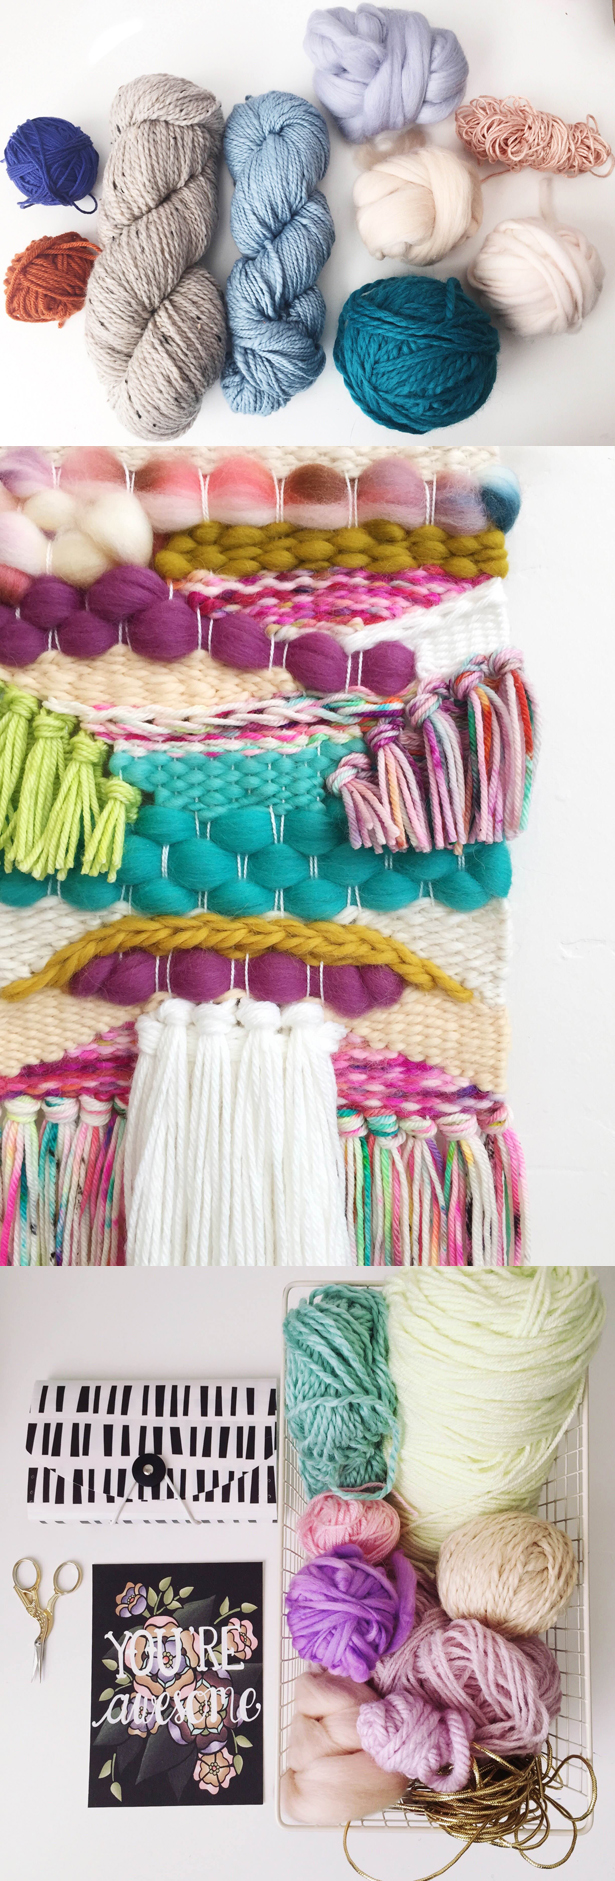 Talking Colors with Wild Plum Co |The Weaving Loom